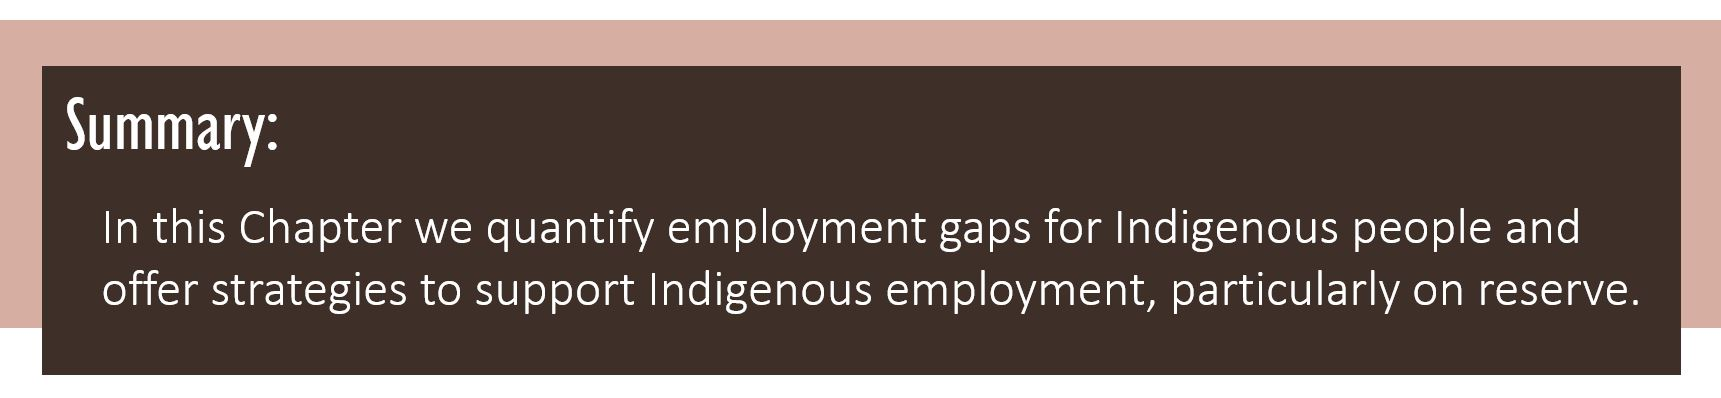 Summary: In this Chapter we quantify employment gaps for Indigenous people and offer strategies to support Indigenous employment, particularly on reserve.